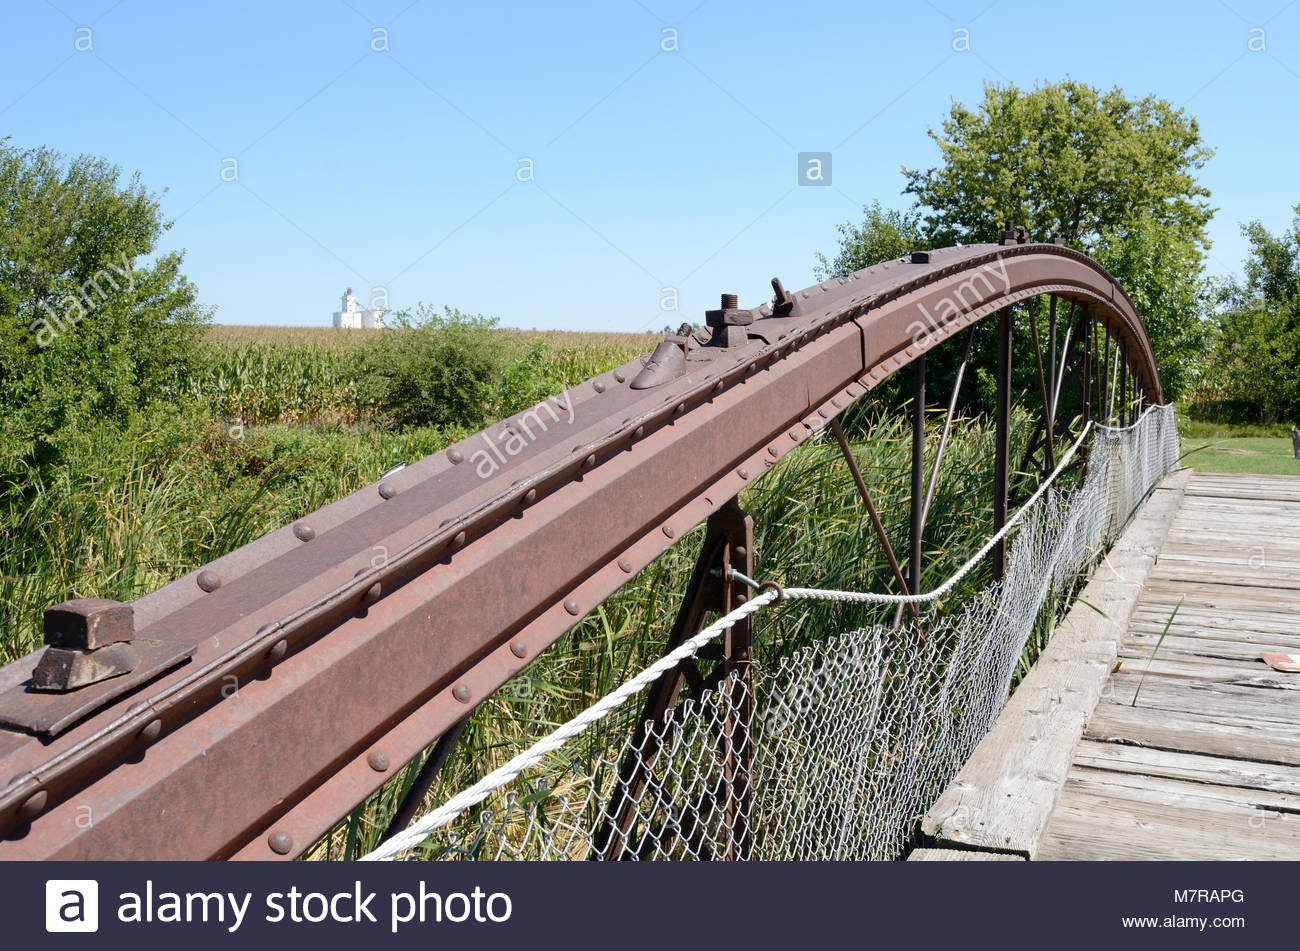 Kansas Cornfield, Kansas Grain Elevator and Kansas Historic Bridge. Wrought Iron Bridge Co. Keystone Columns. A - Stock Image